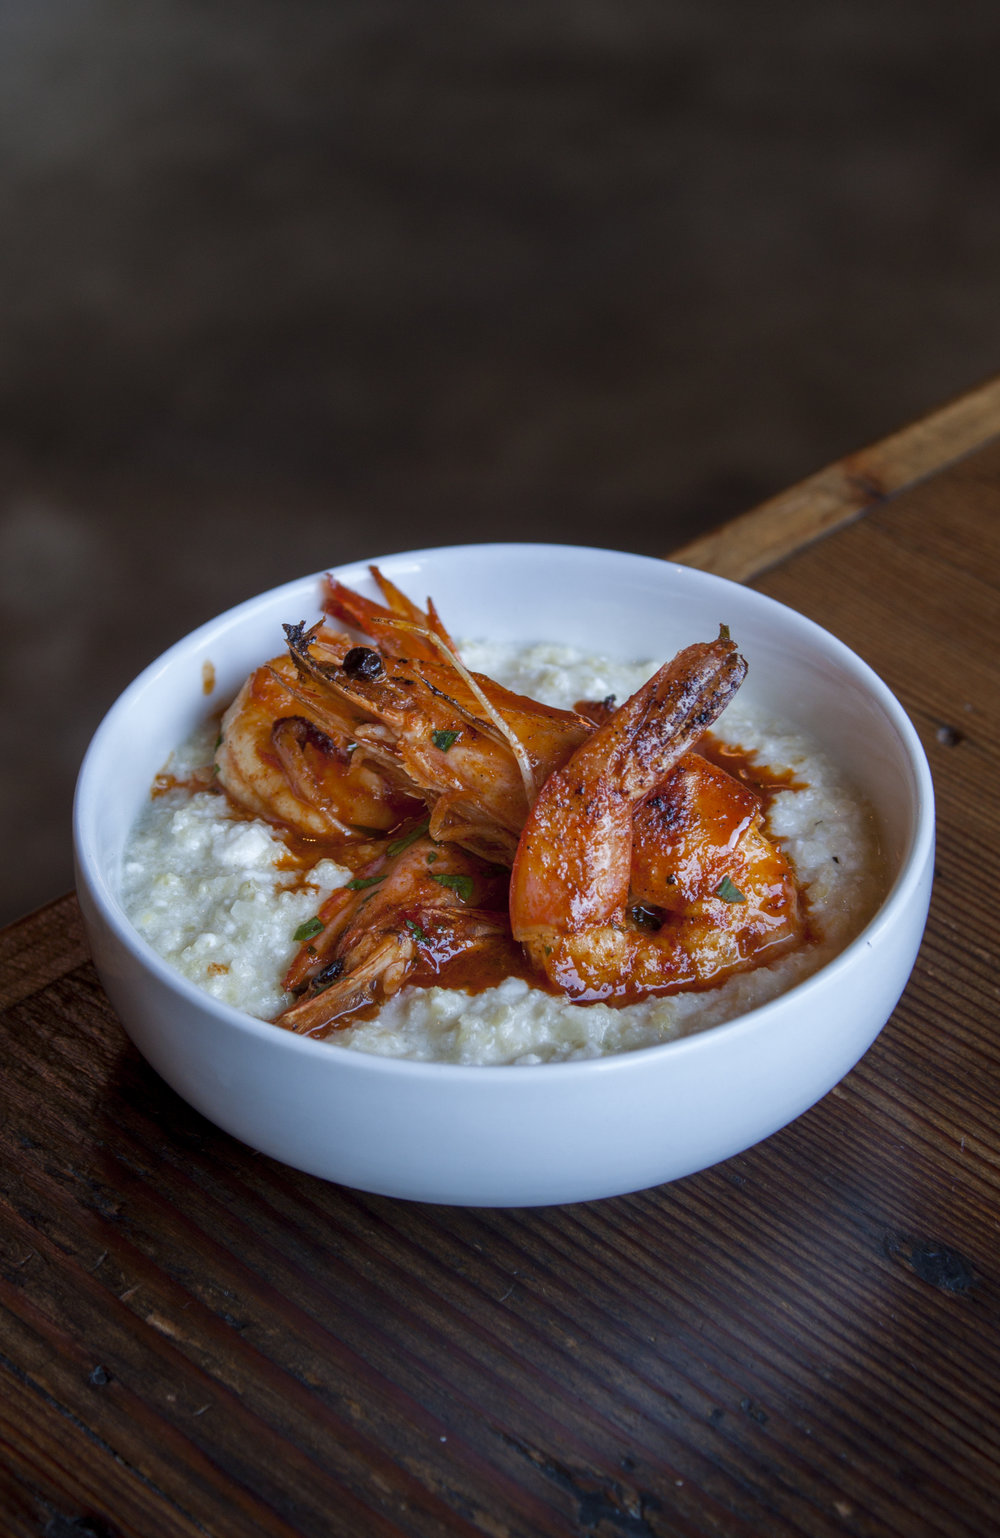 One of the best shrimp and grits in LA can be surprisingly be found at Odys Penelope in Mid-City. Made with cauliflower, this recipe is unique. Odys+ Penelope